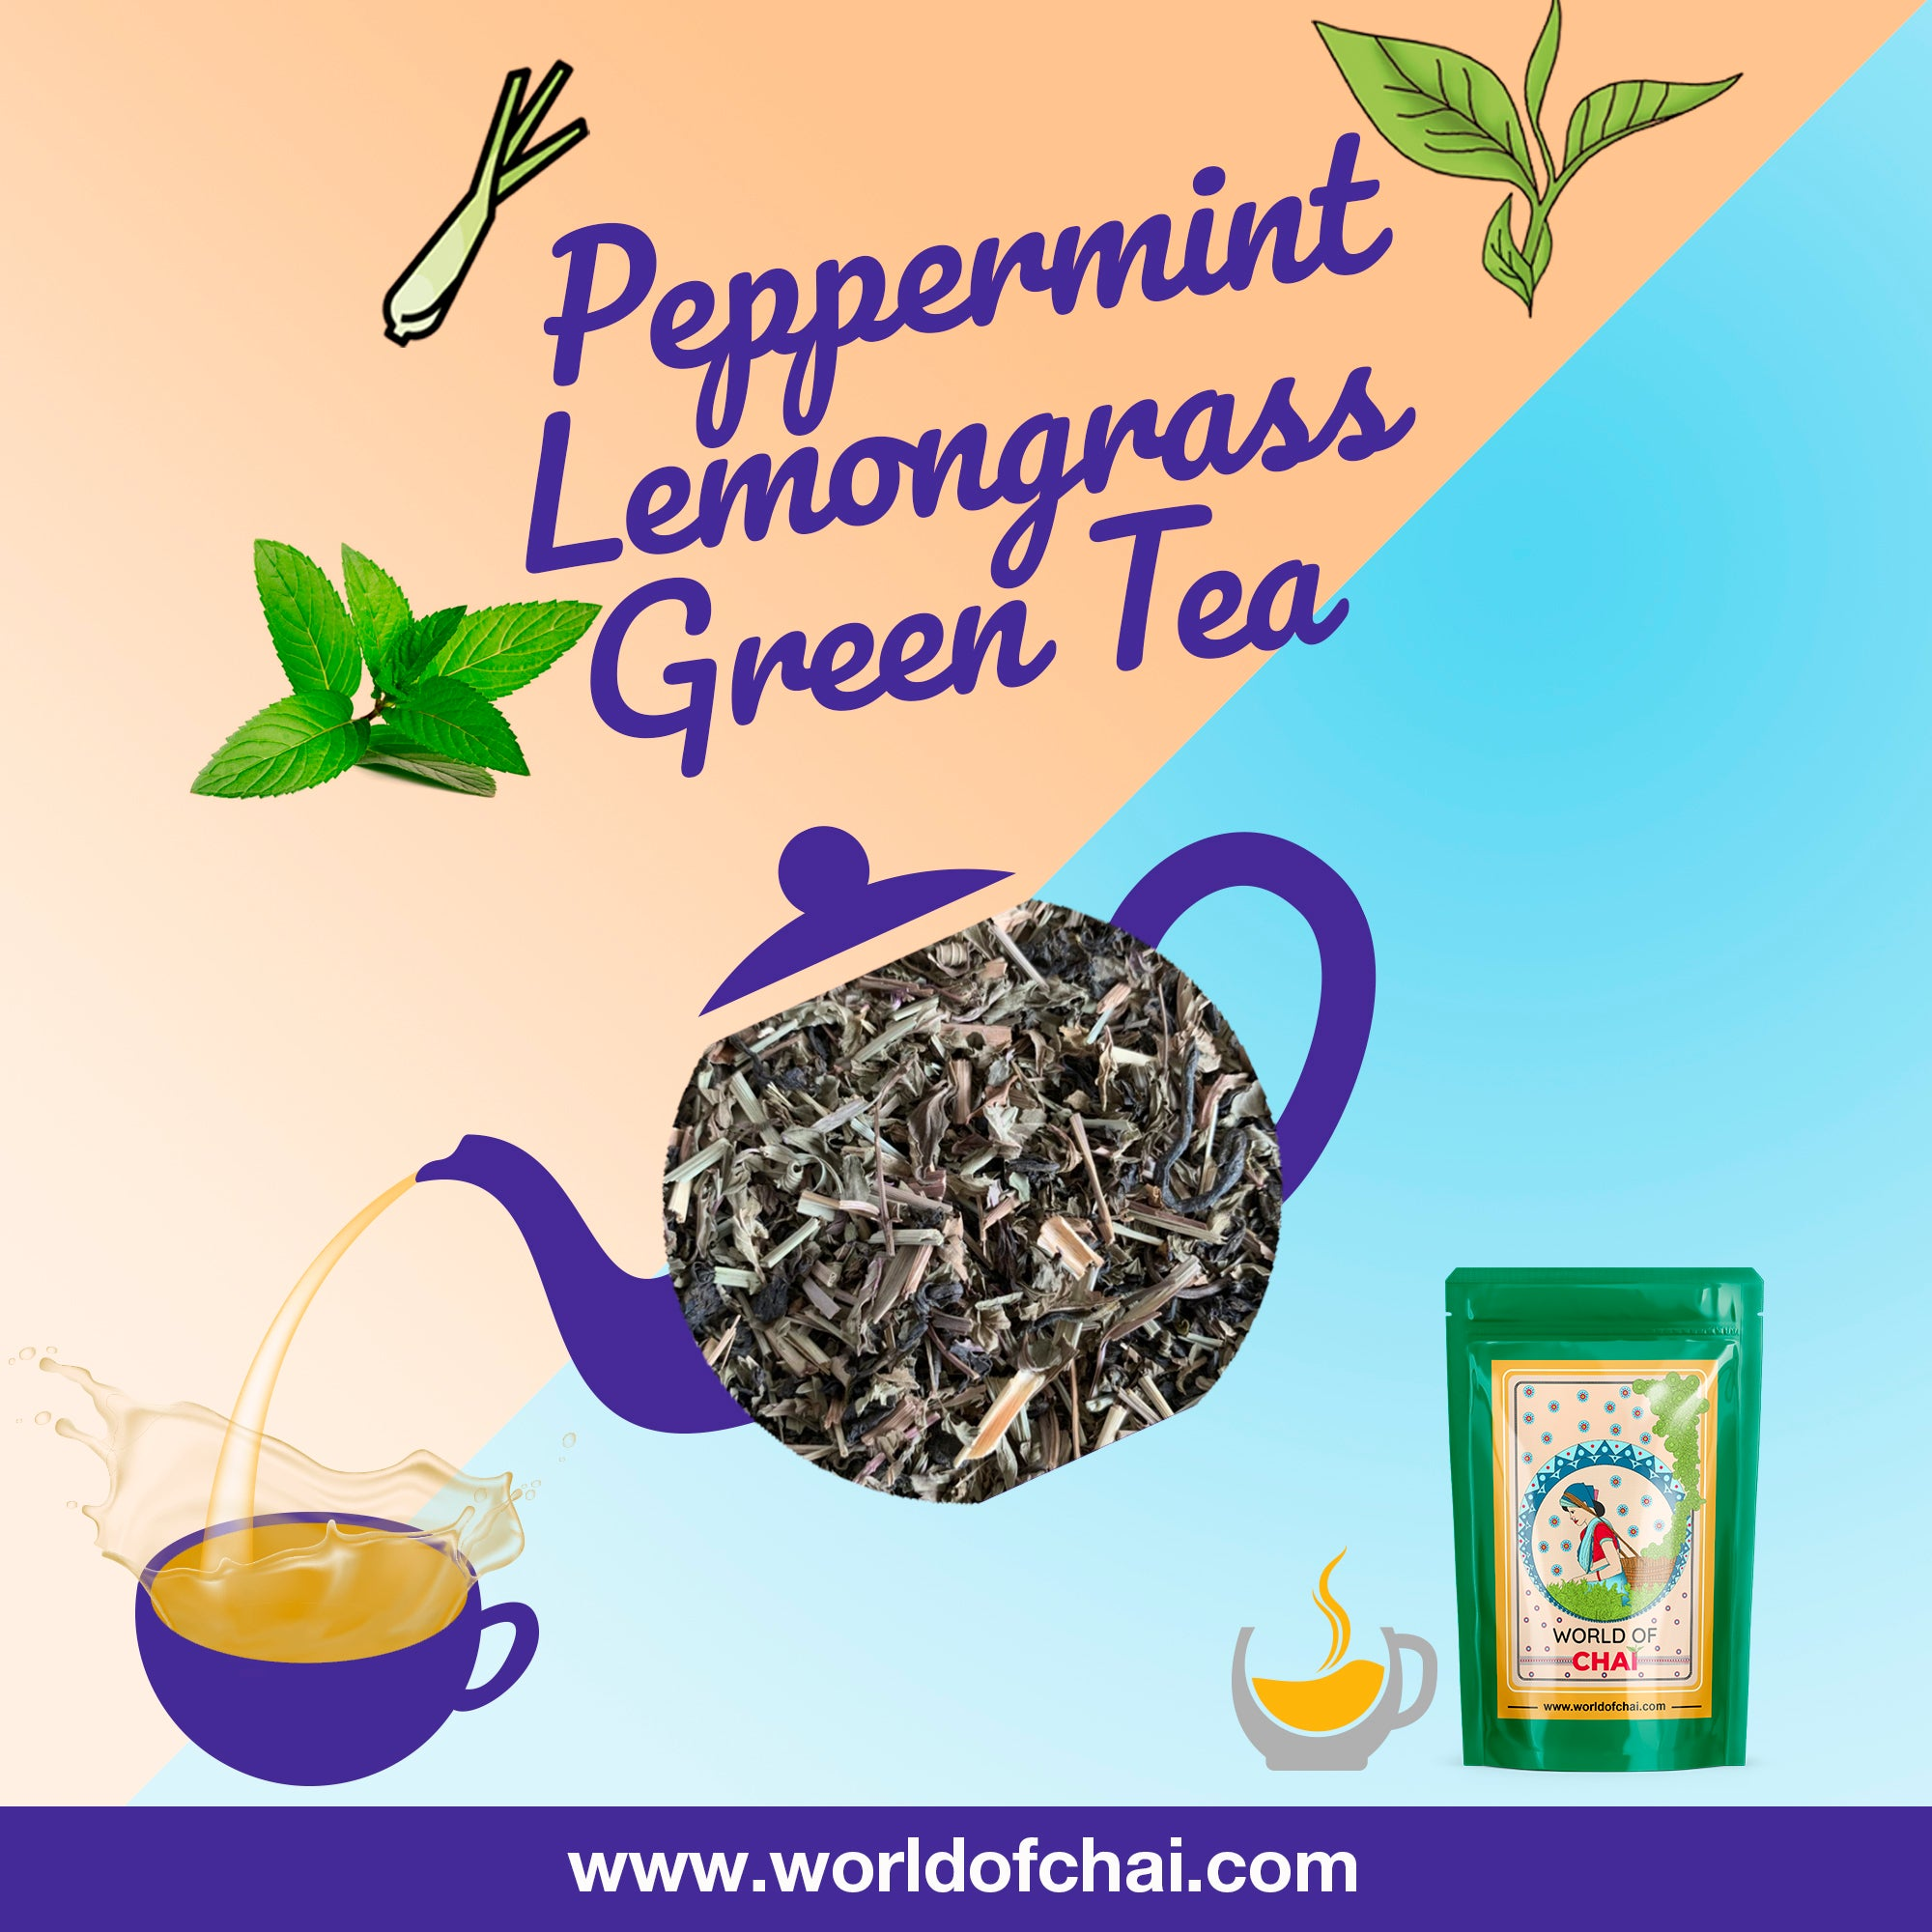 Peppermint Lemongrass Green Leaf Tea